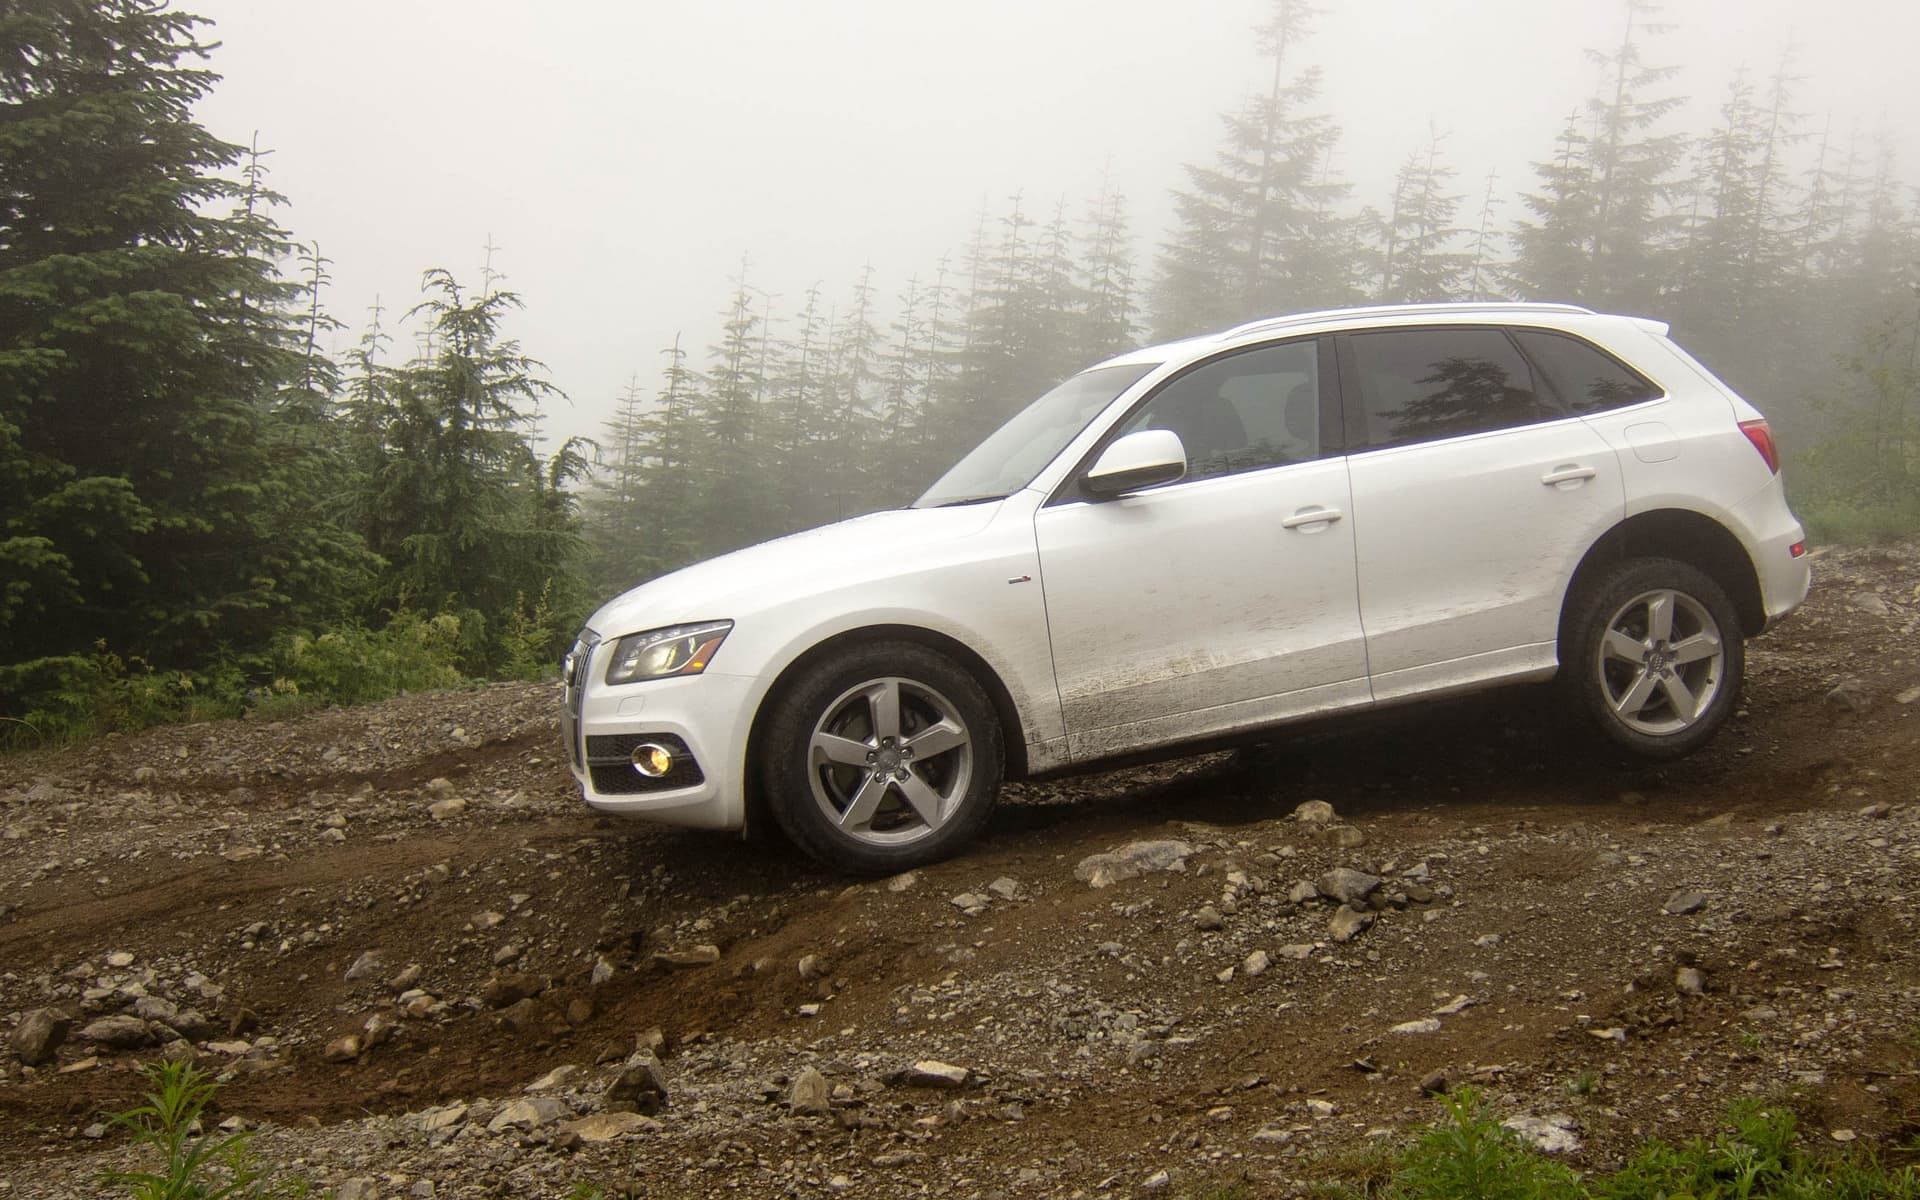 White Audi Q5 High Definition Wallpaper Hd Image 19 On